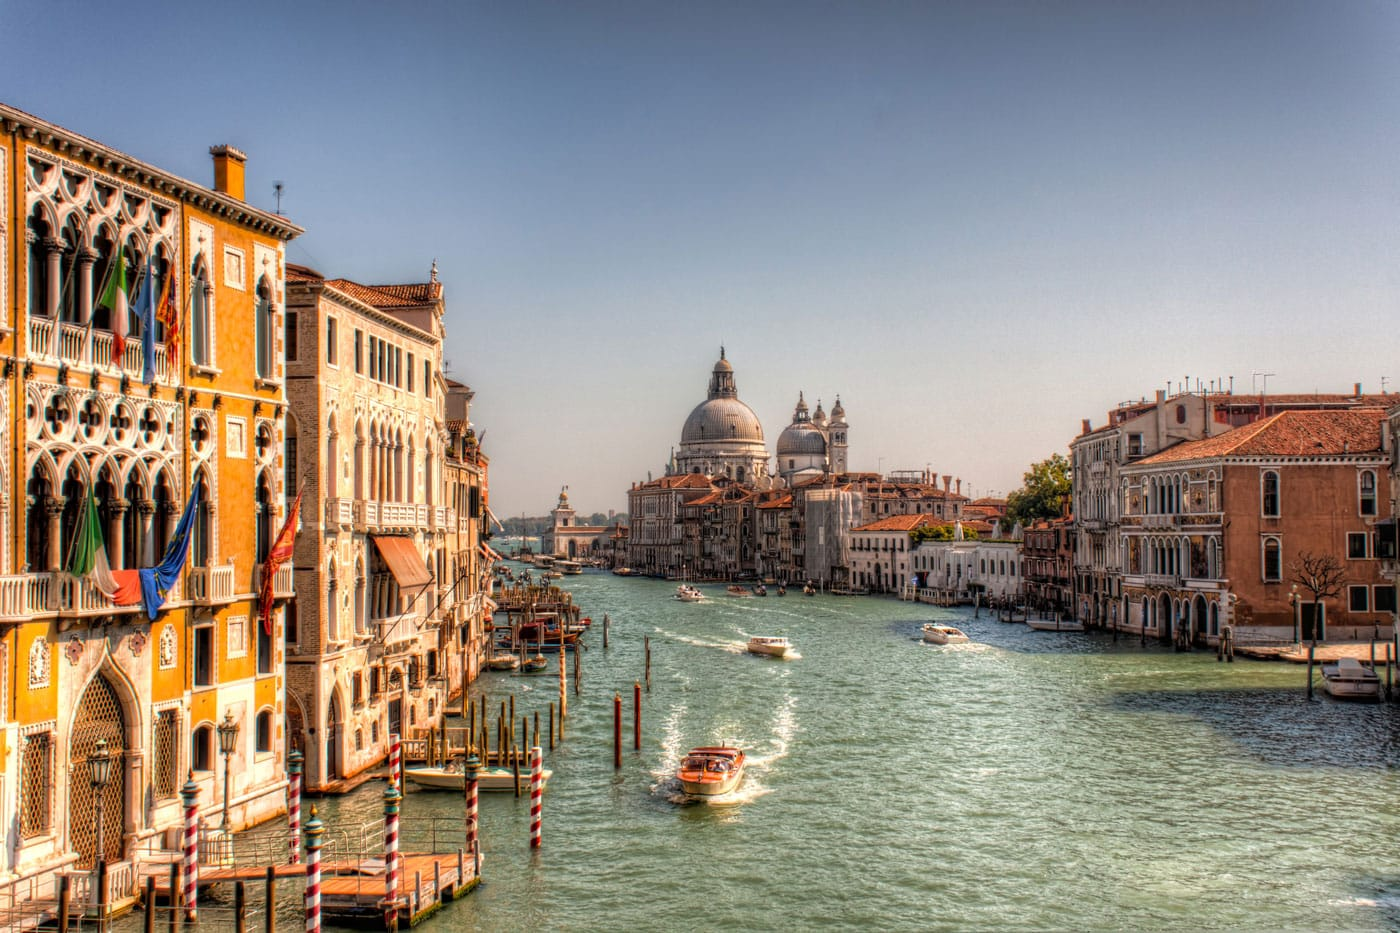 The Grand Canal | Venice, Italy